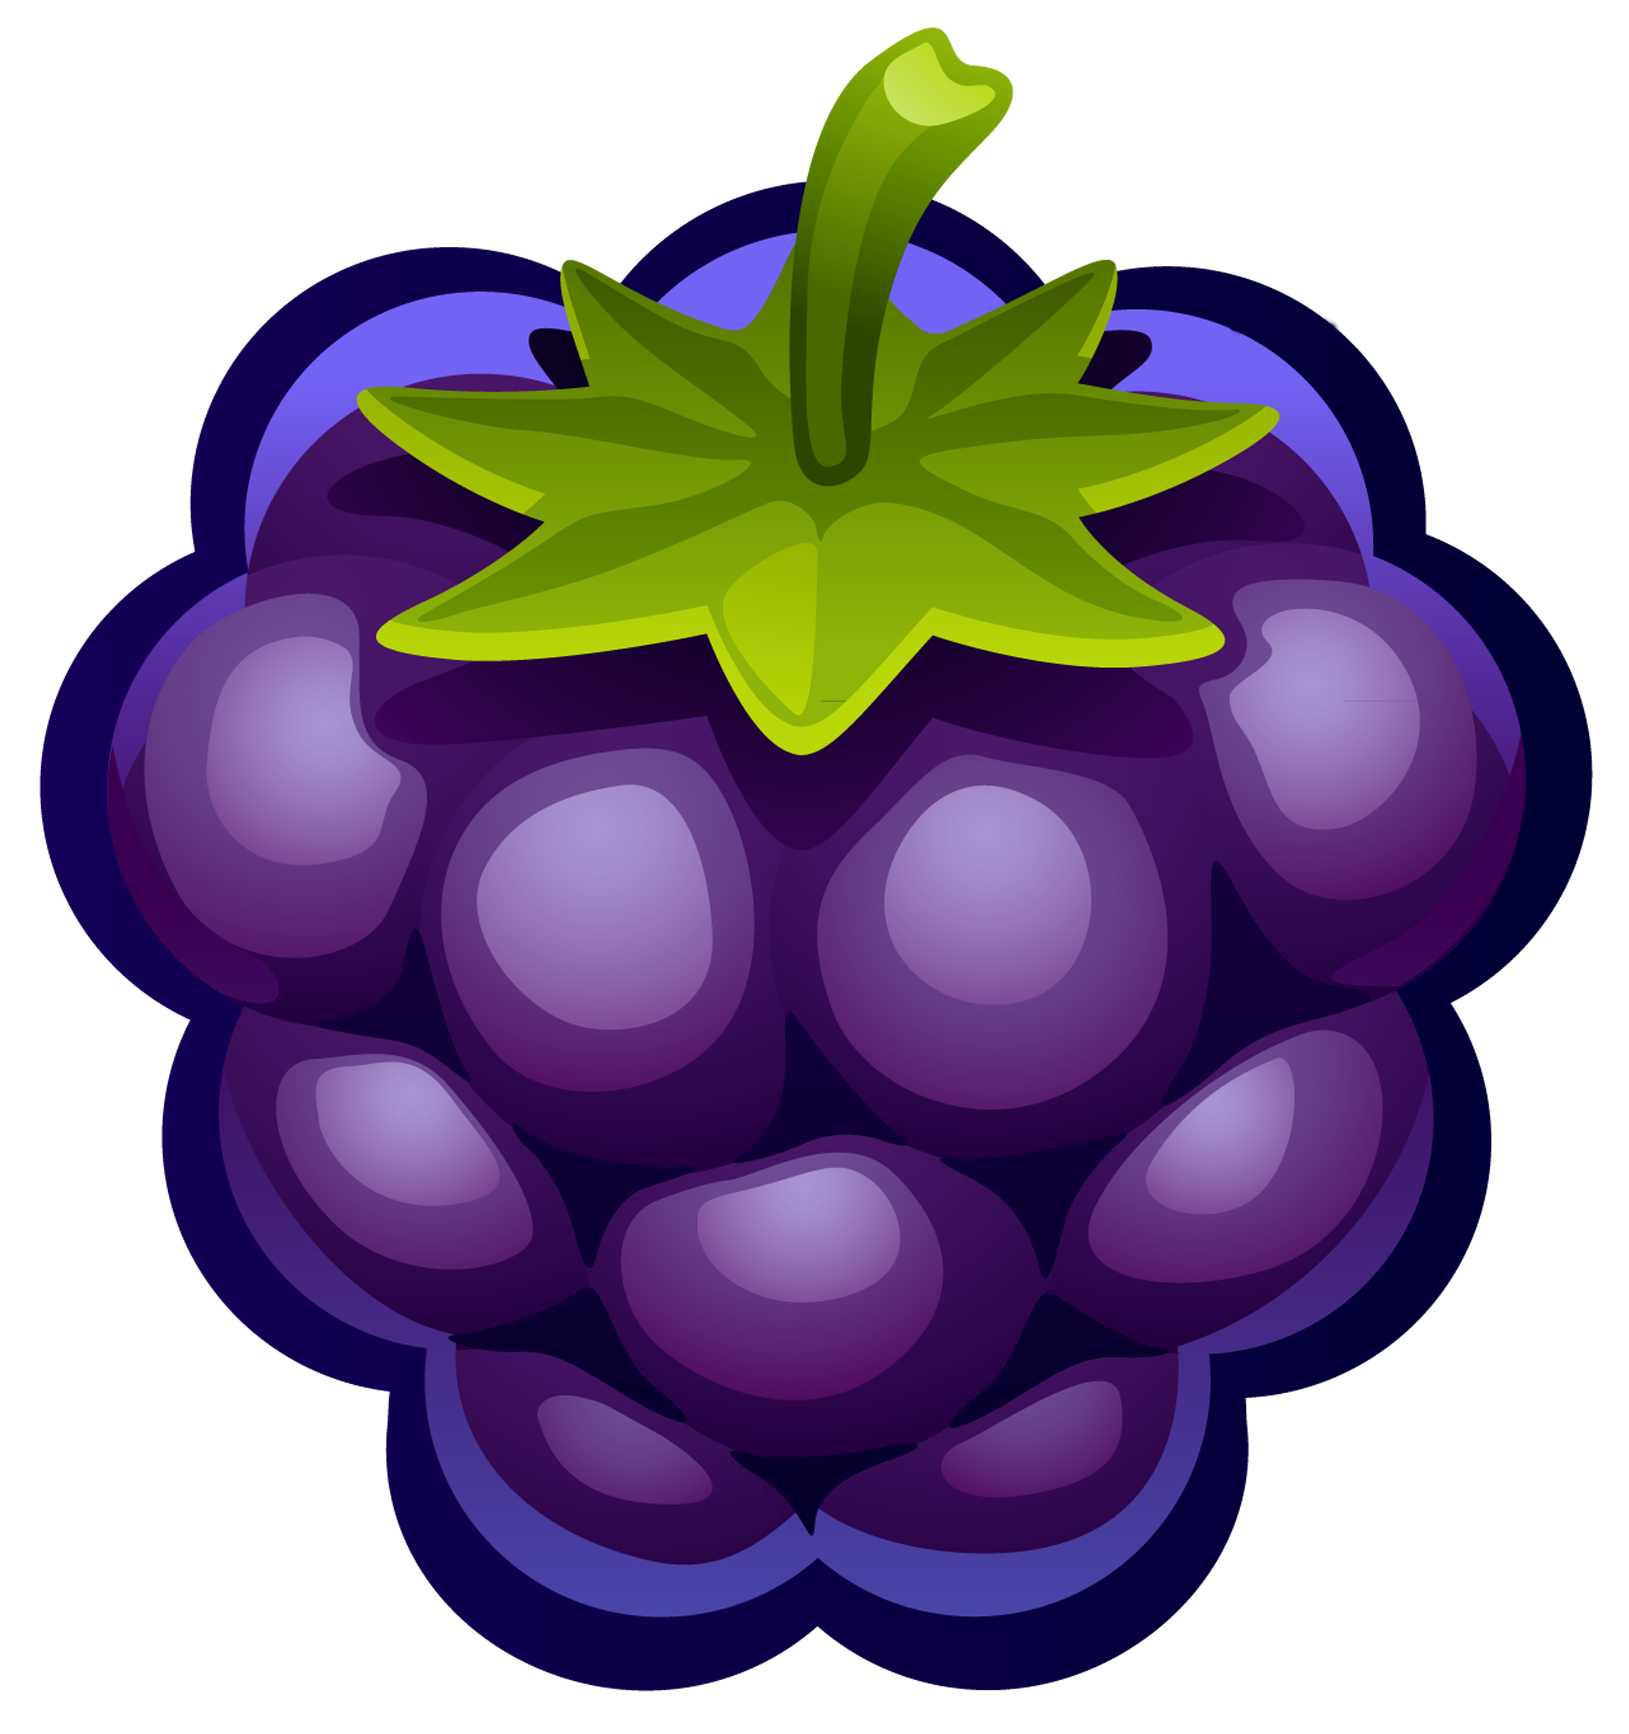 Blueberry clipart 20 free Cliparts | Download images on ...